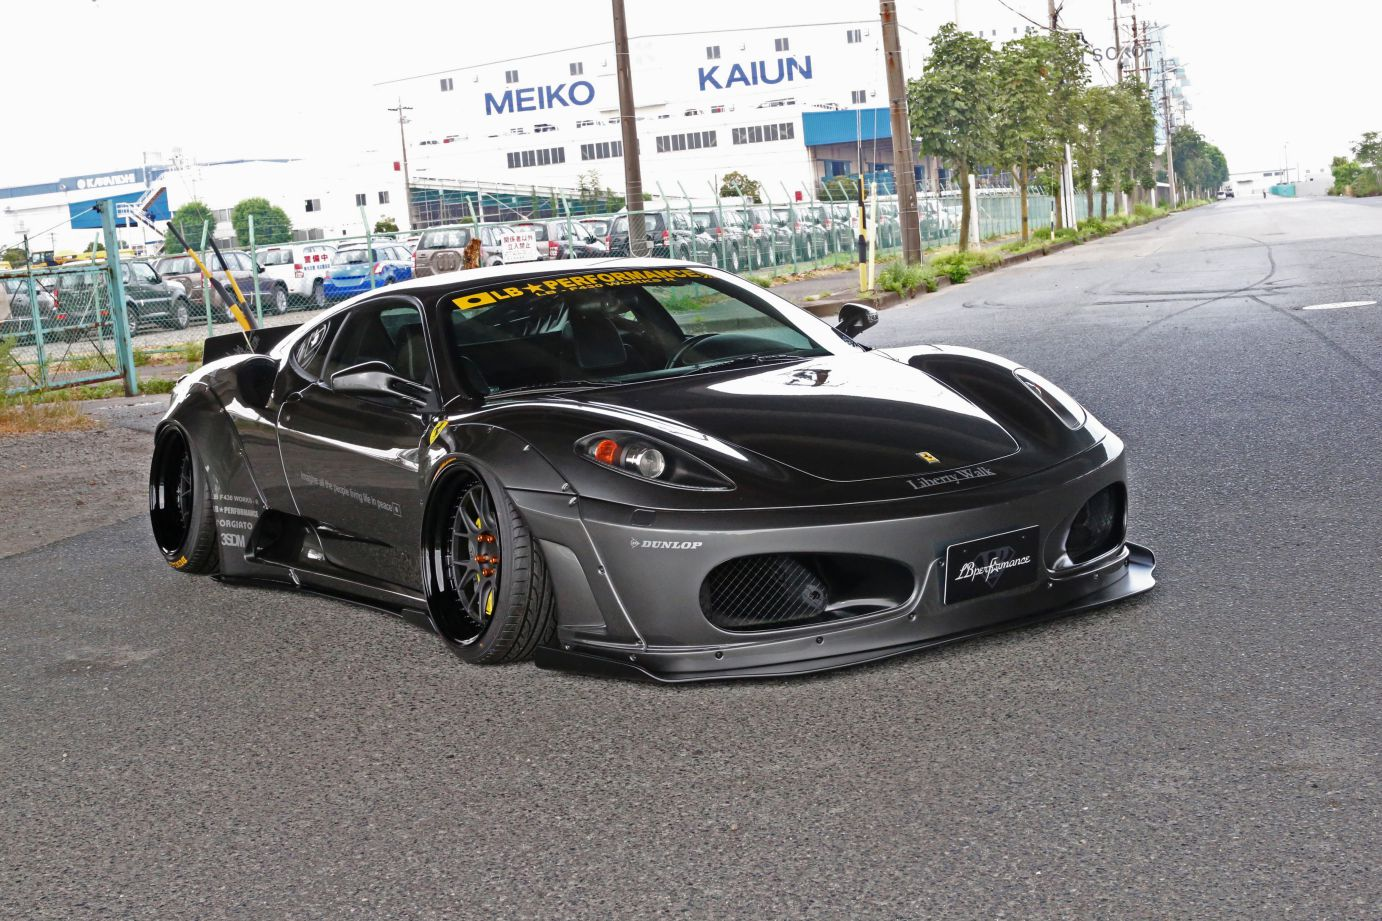 IMG_0696_compressed LB-WORKS F430